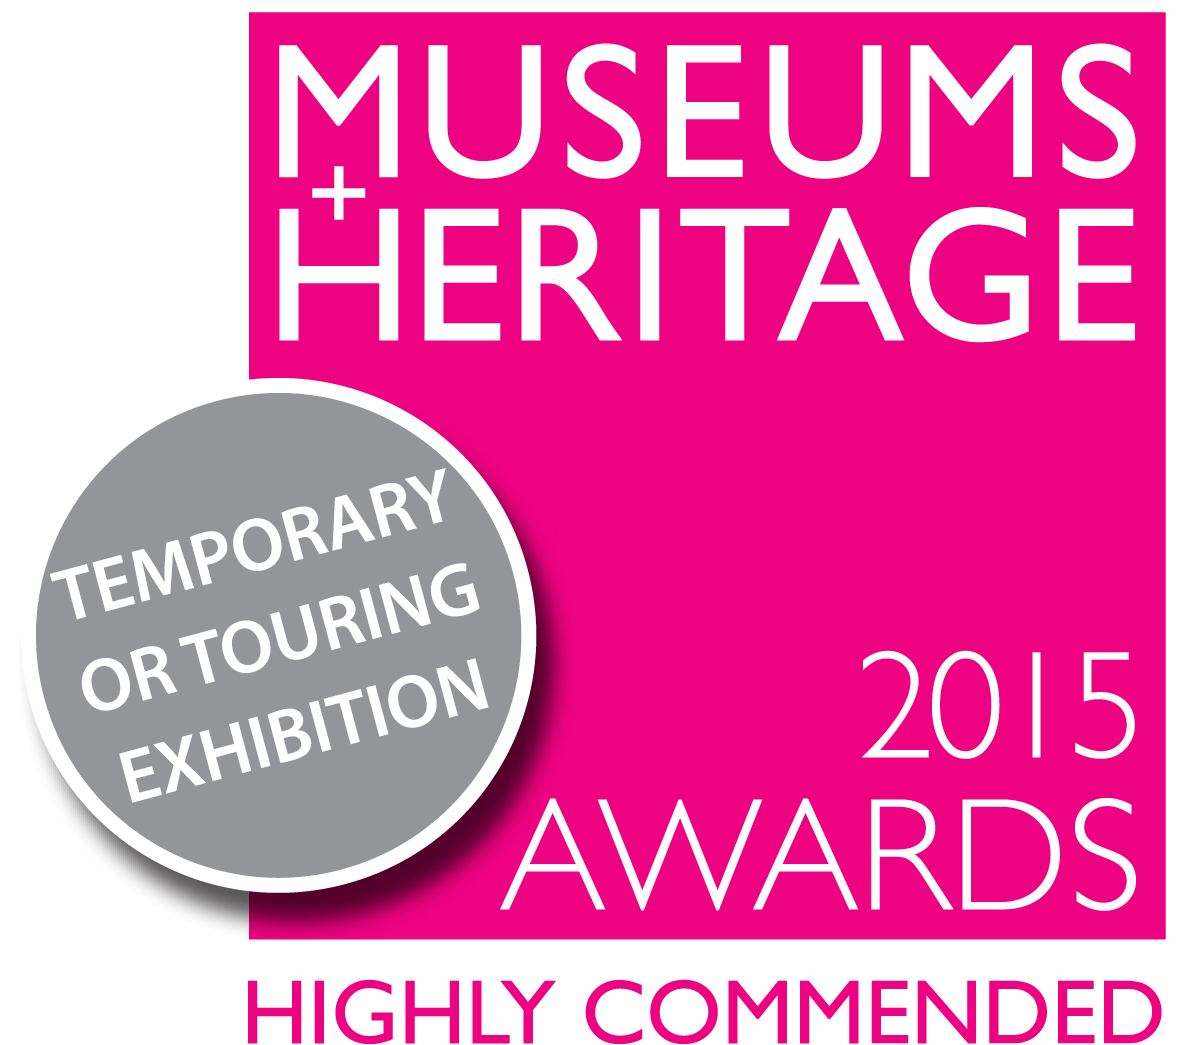 Museum and Heritage Awards' Highly Commended for Best Temporary Exhibition